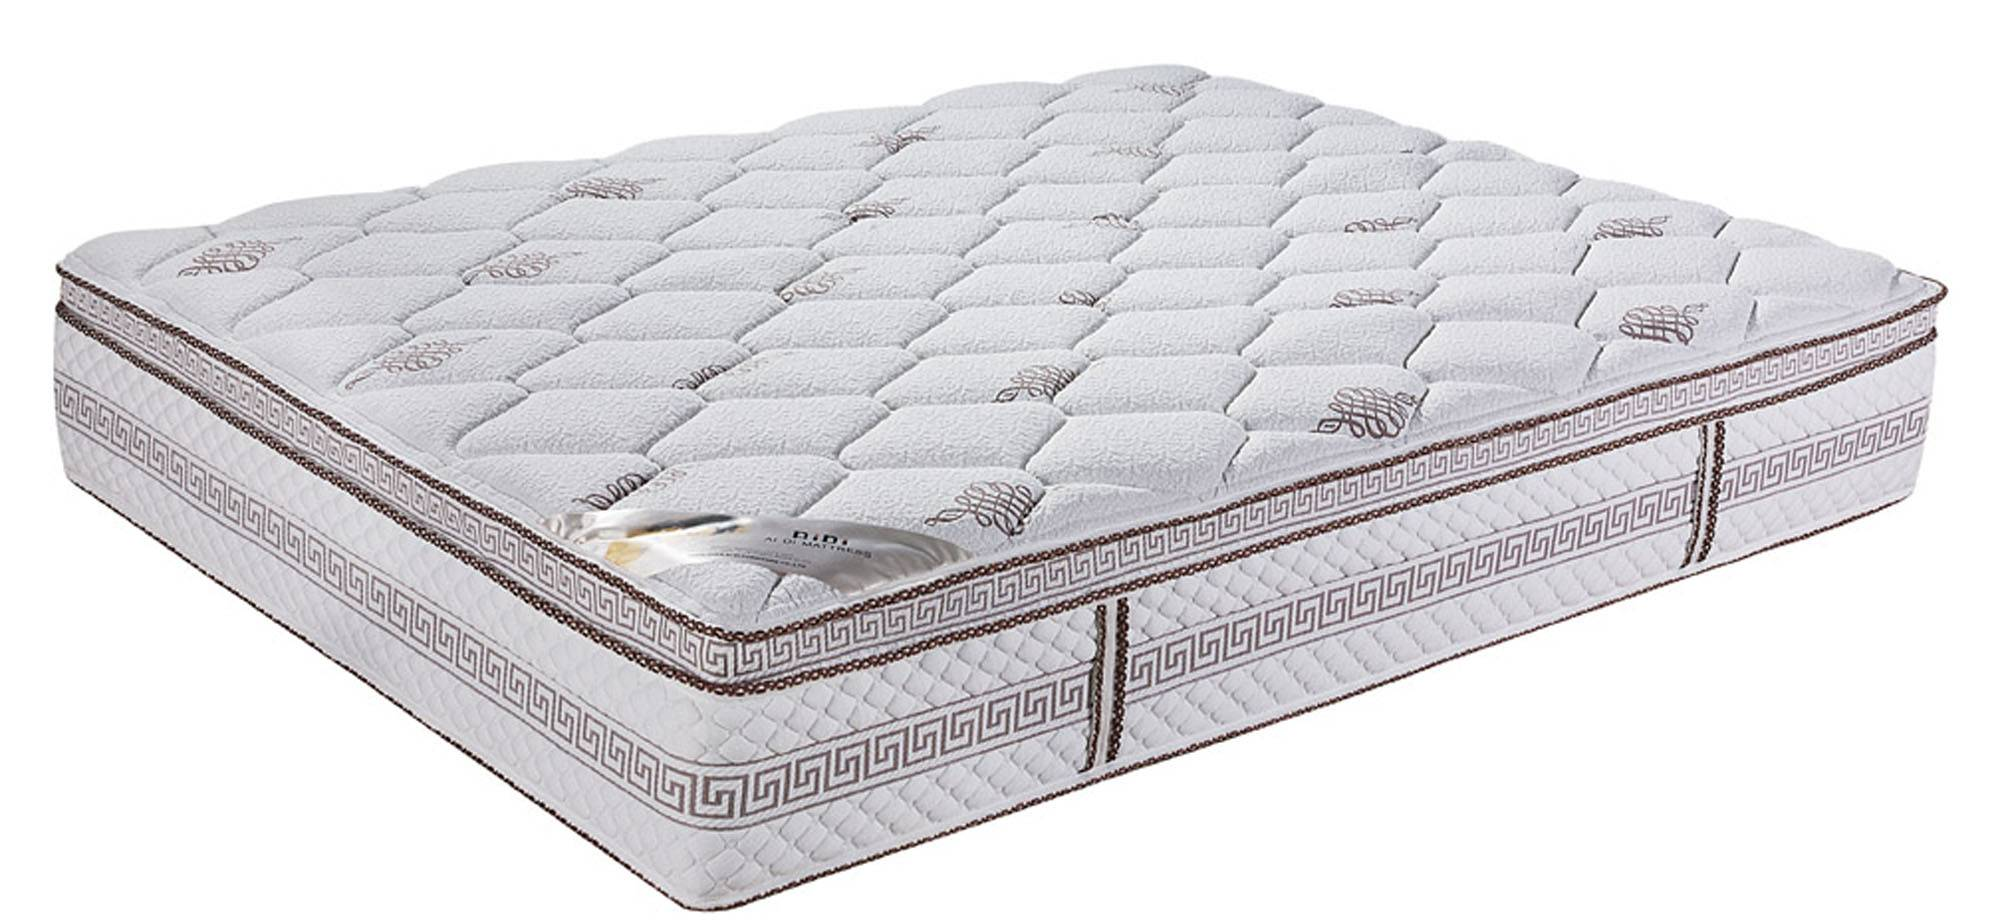 ANU-0332b Home use pocket spring compressed bed mattress super comfortable Room mattress for any siz